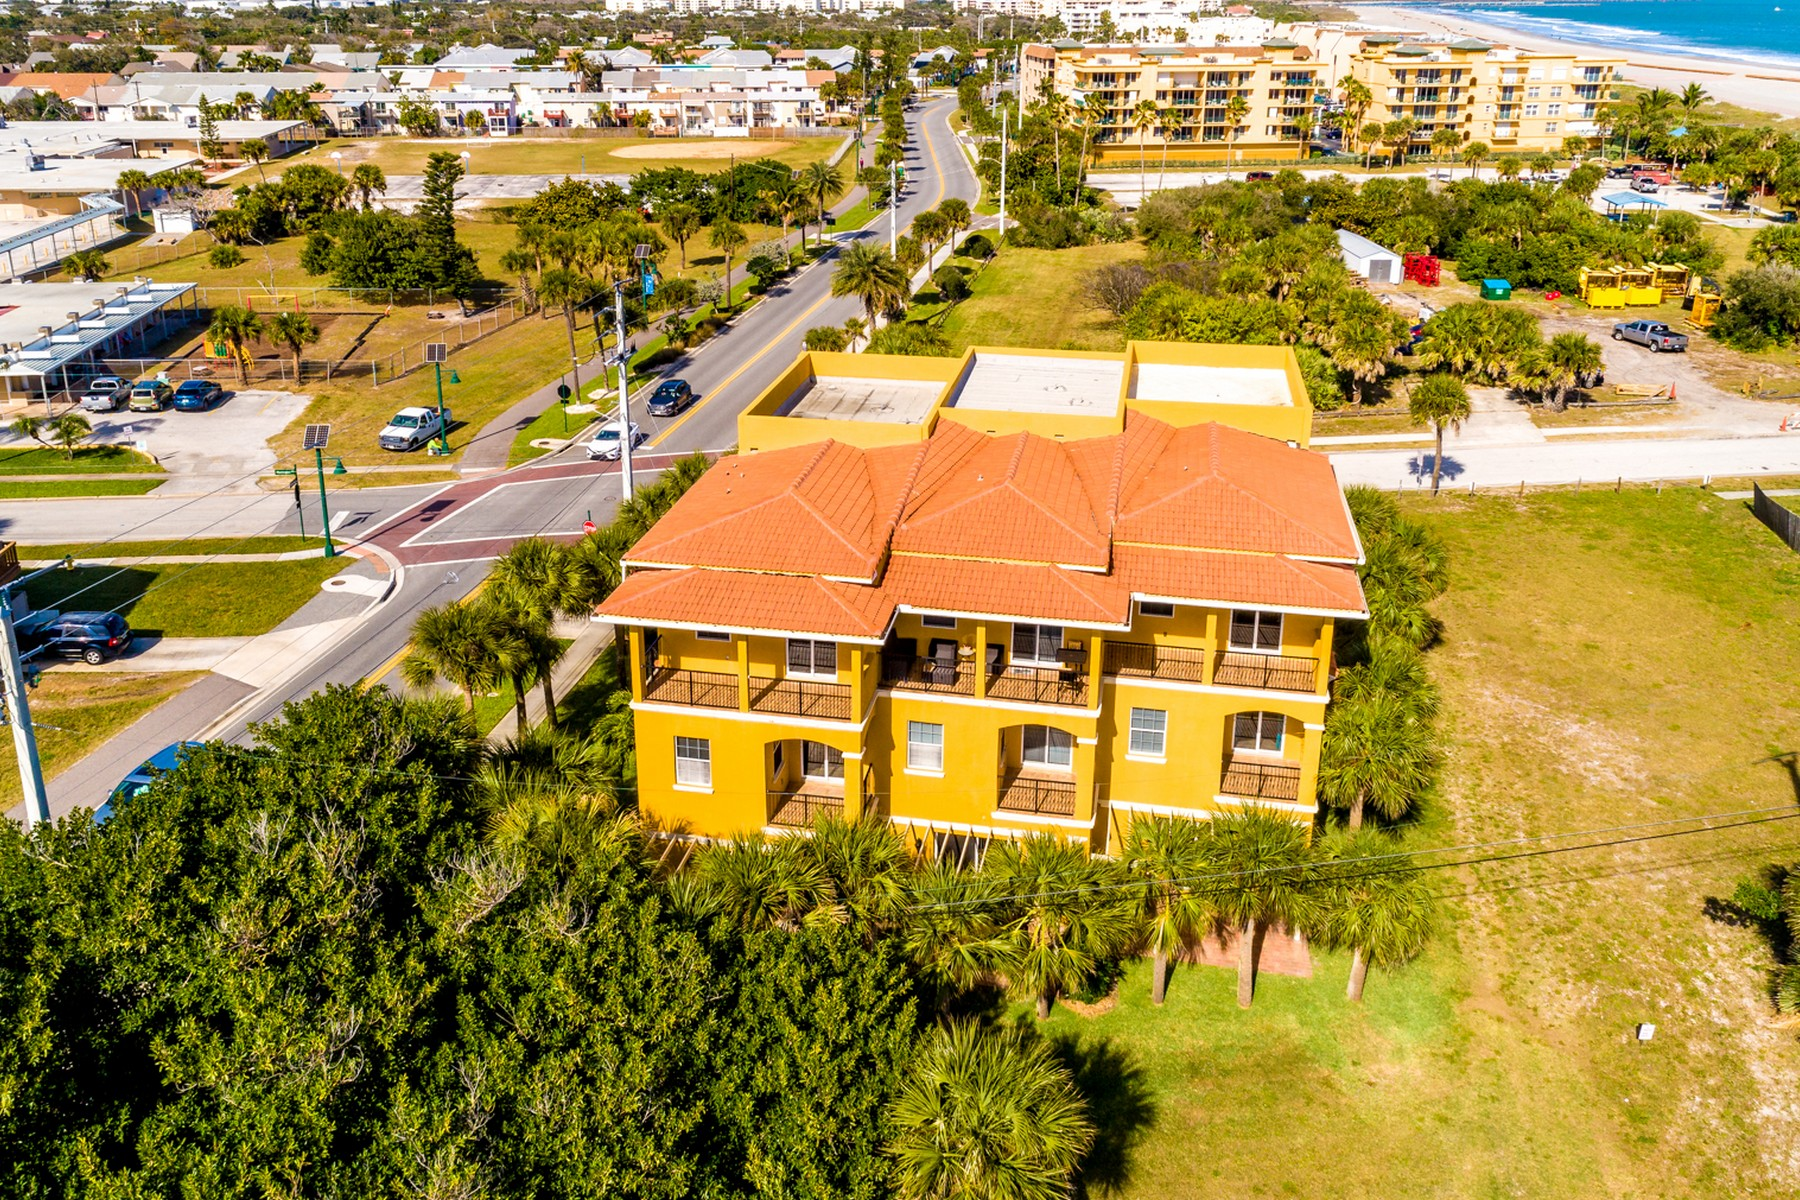 Additional photo for property listing at Beautiful, luxury townhome with sensational ocean views. 603 Washington Avenue Unit 1 Cape Canaveral, Florida 32920 United States